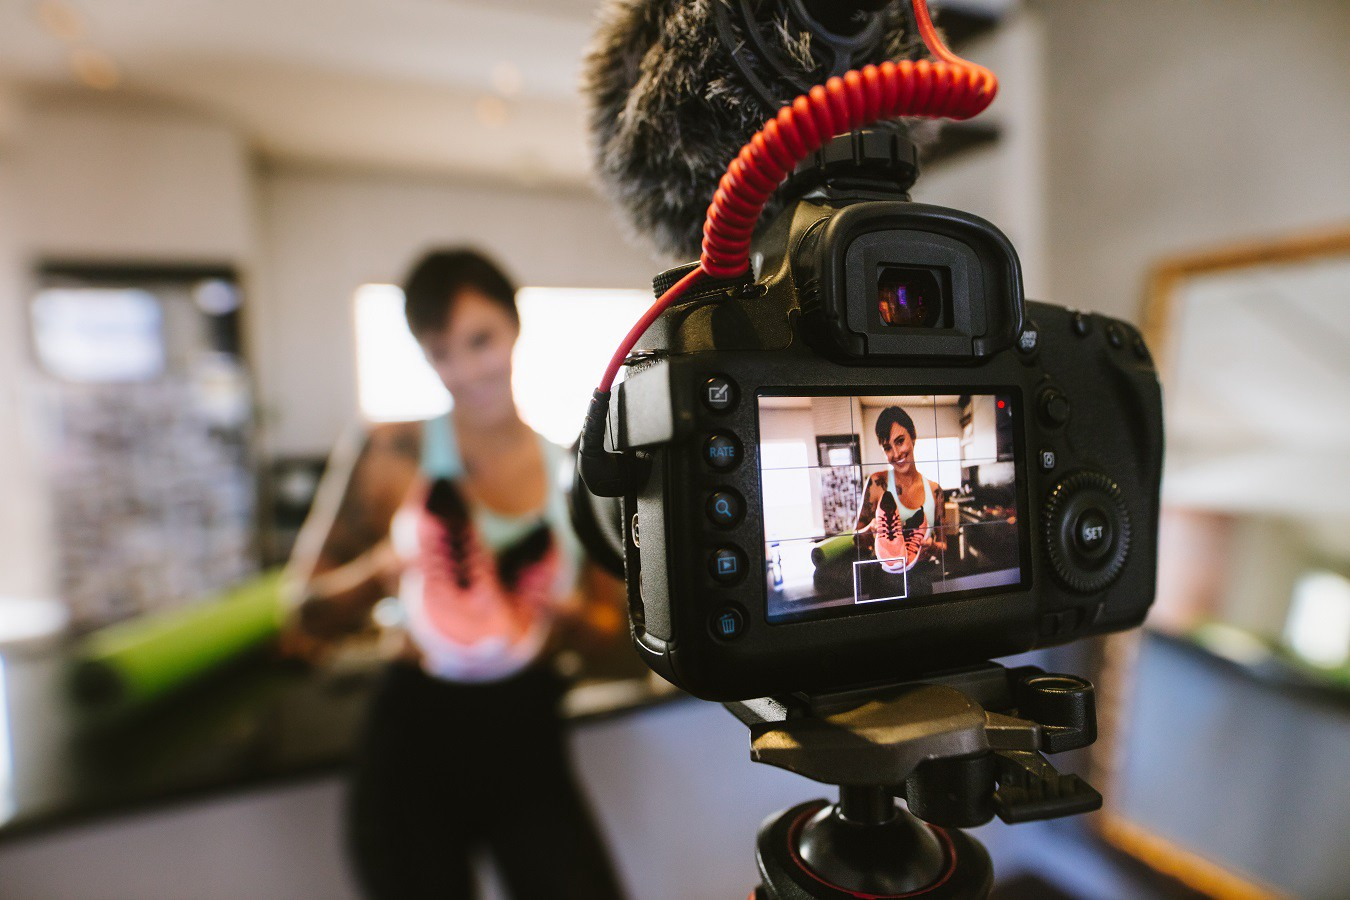 Demystifying the Debate Around Influencer Marketing (How to Do It Correctly)